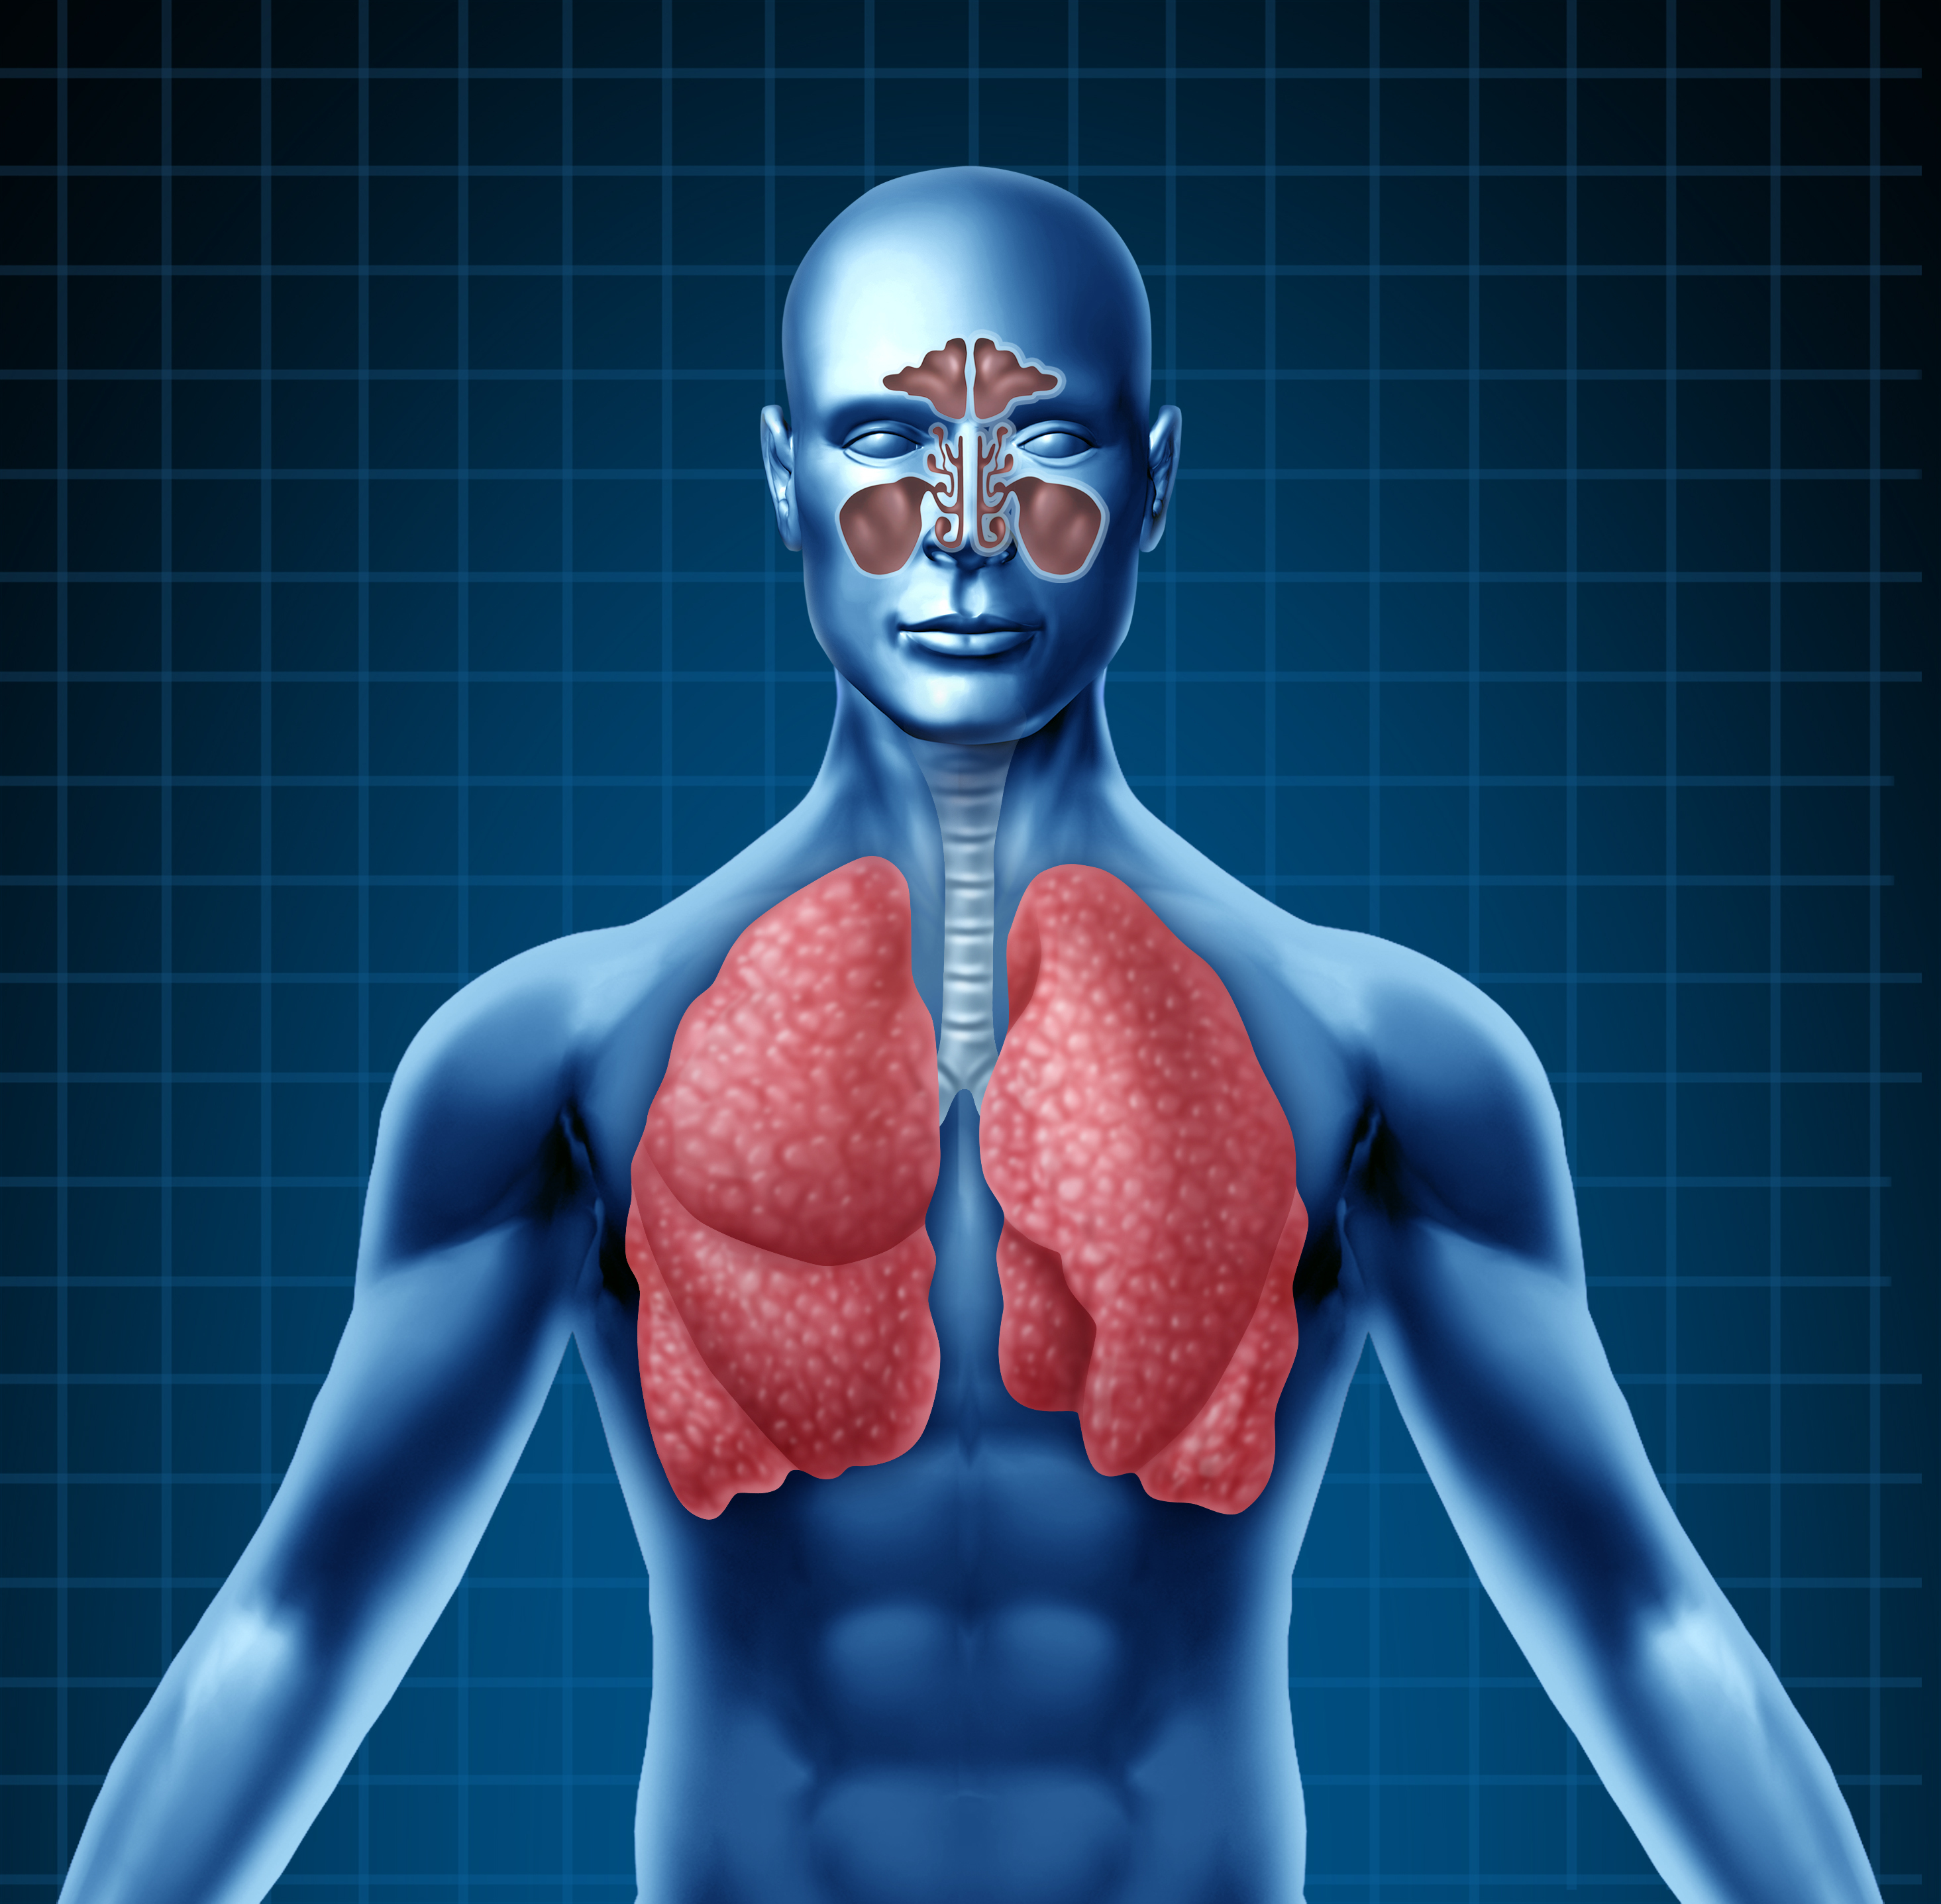 Protalix BioTherapeutics Reveals Promising Data on AIR DNase for Cystic Fibrosis Treatment